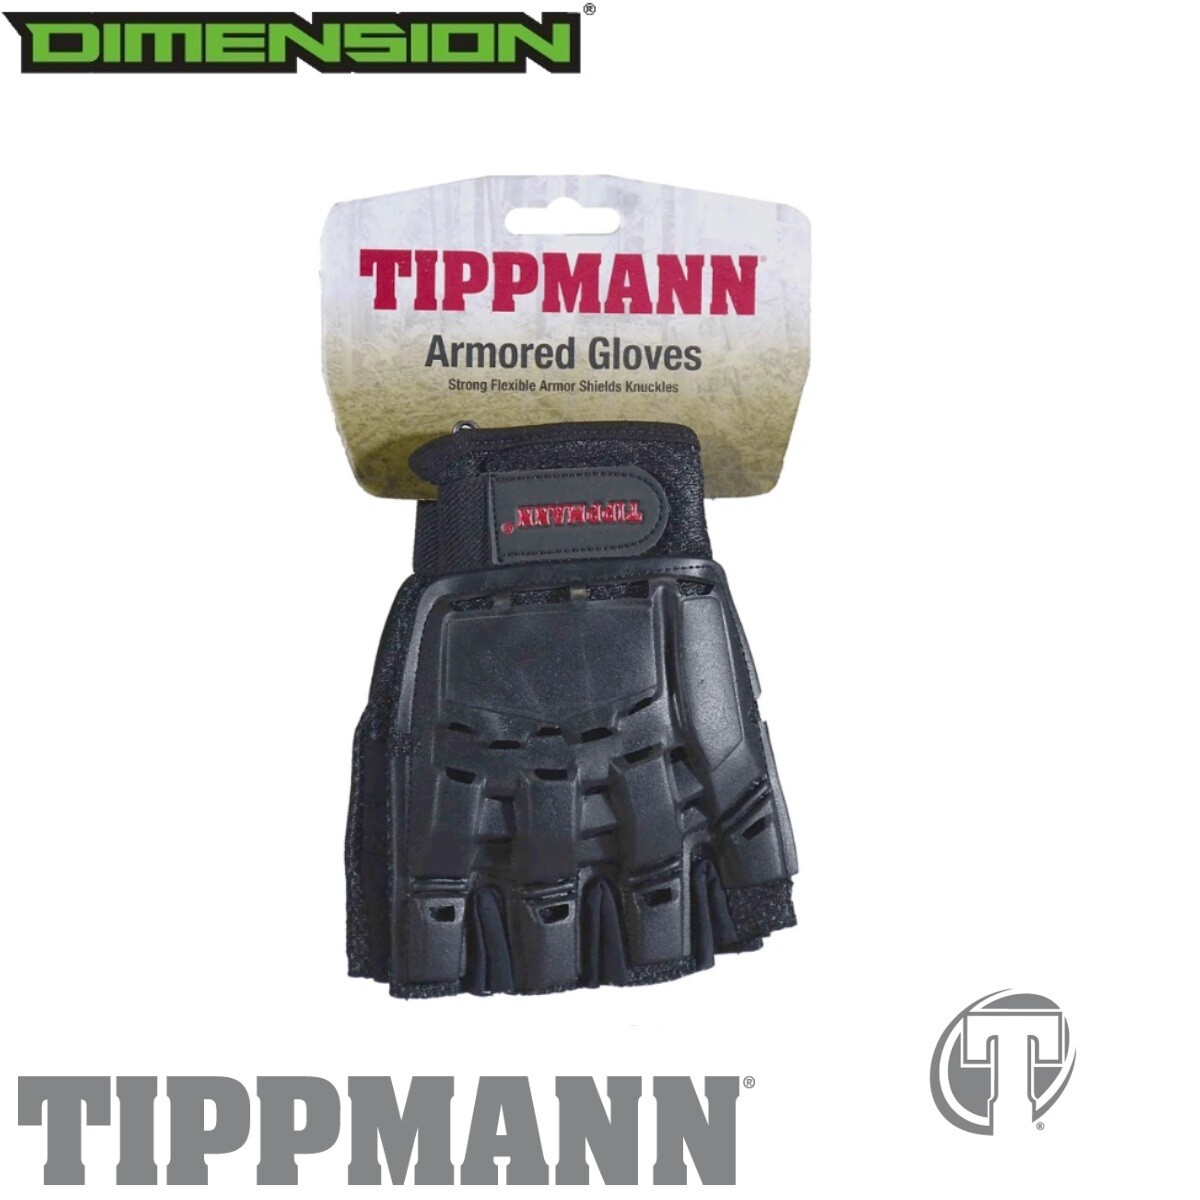 Tippmann Armored Gloves - Large